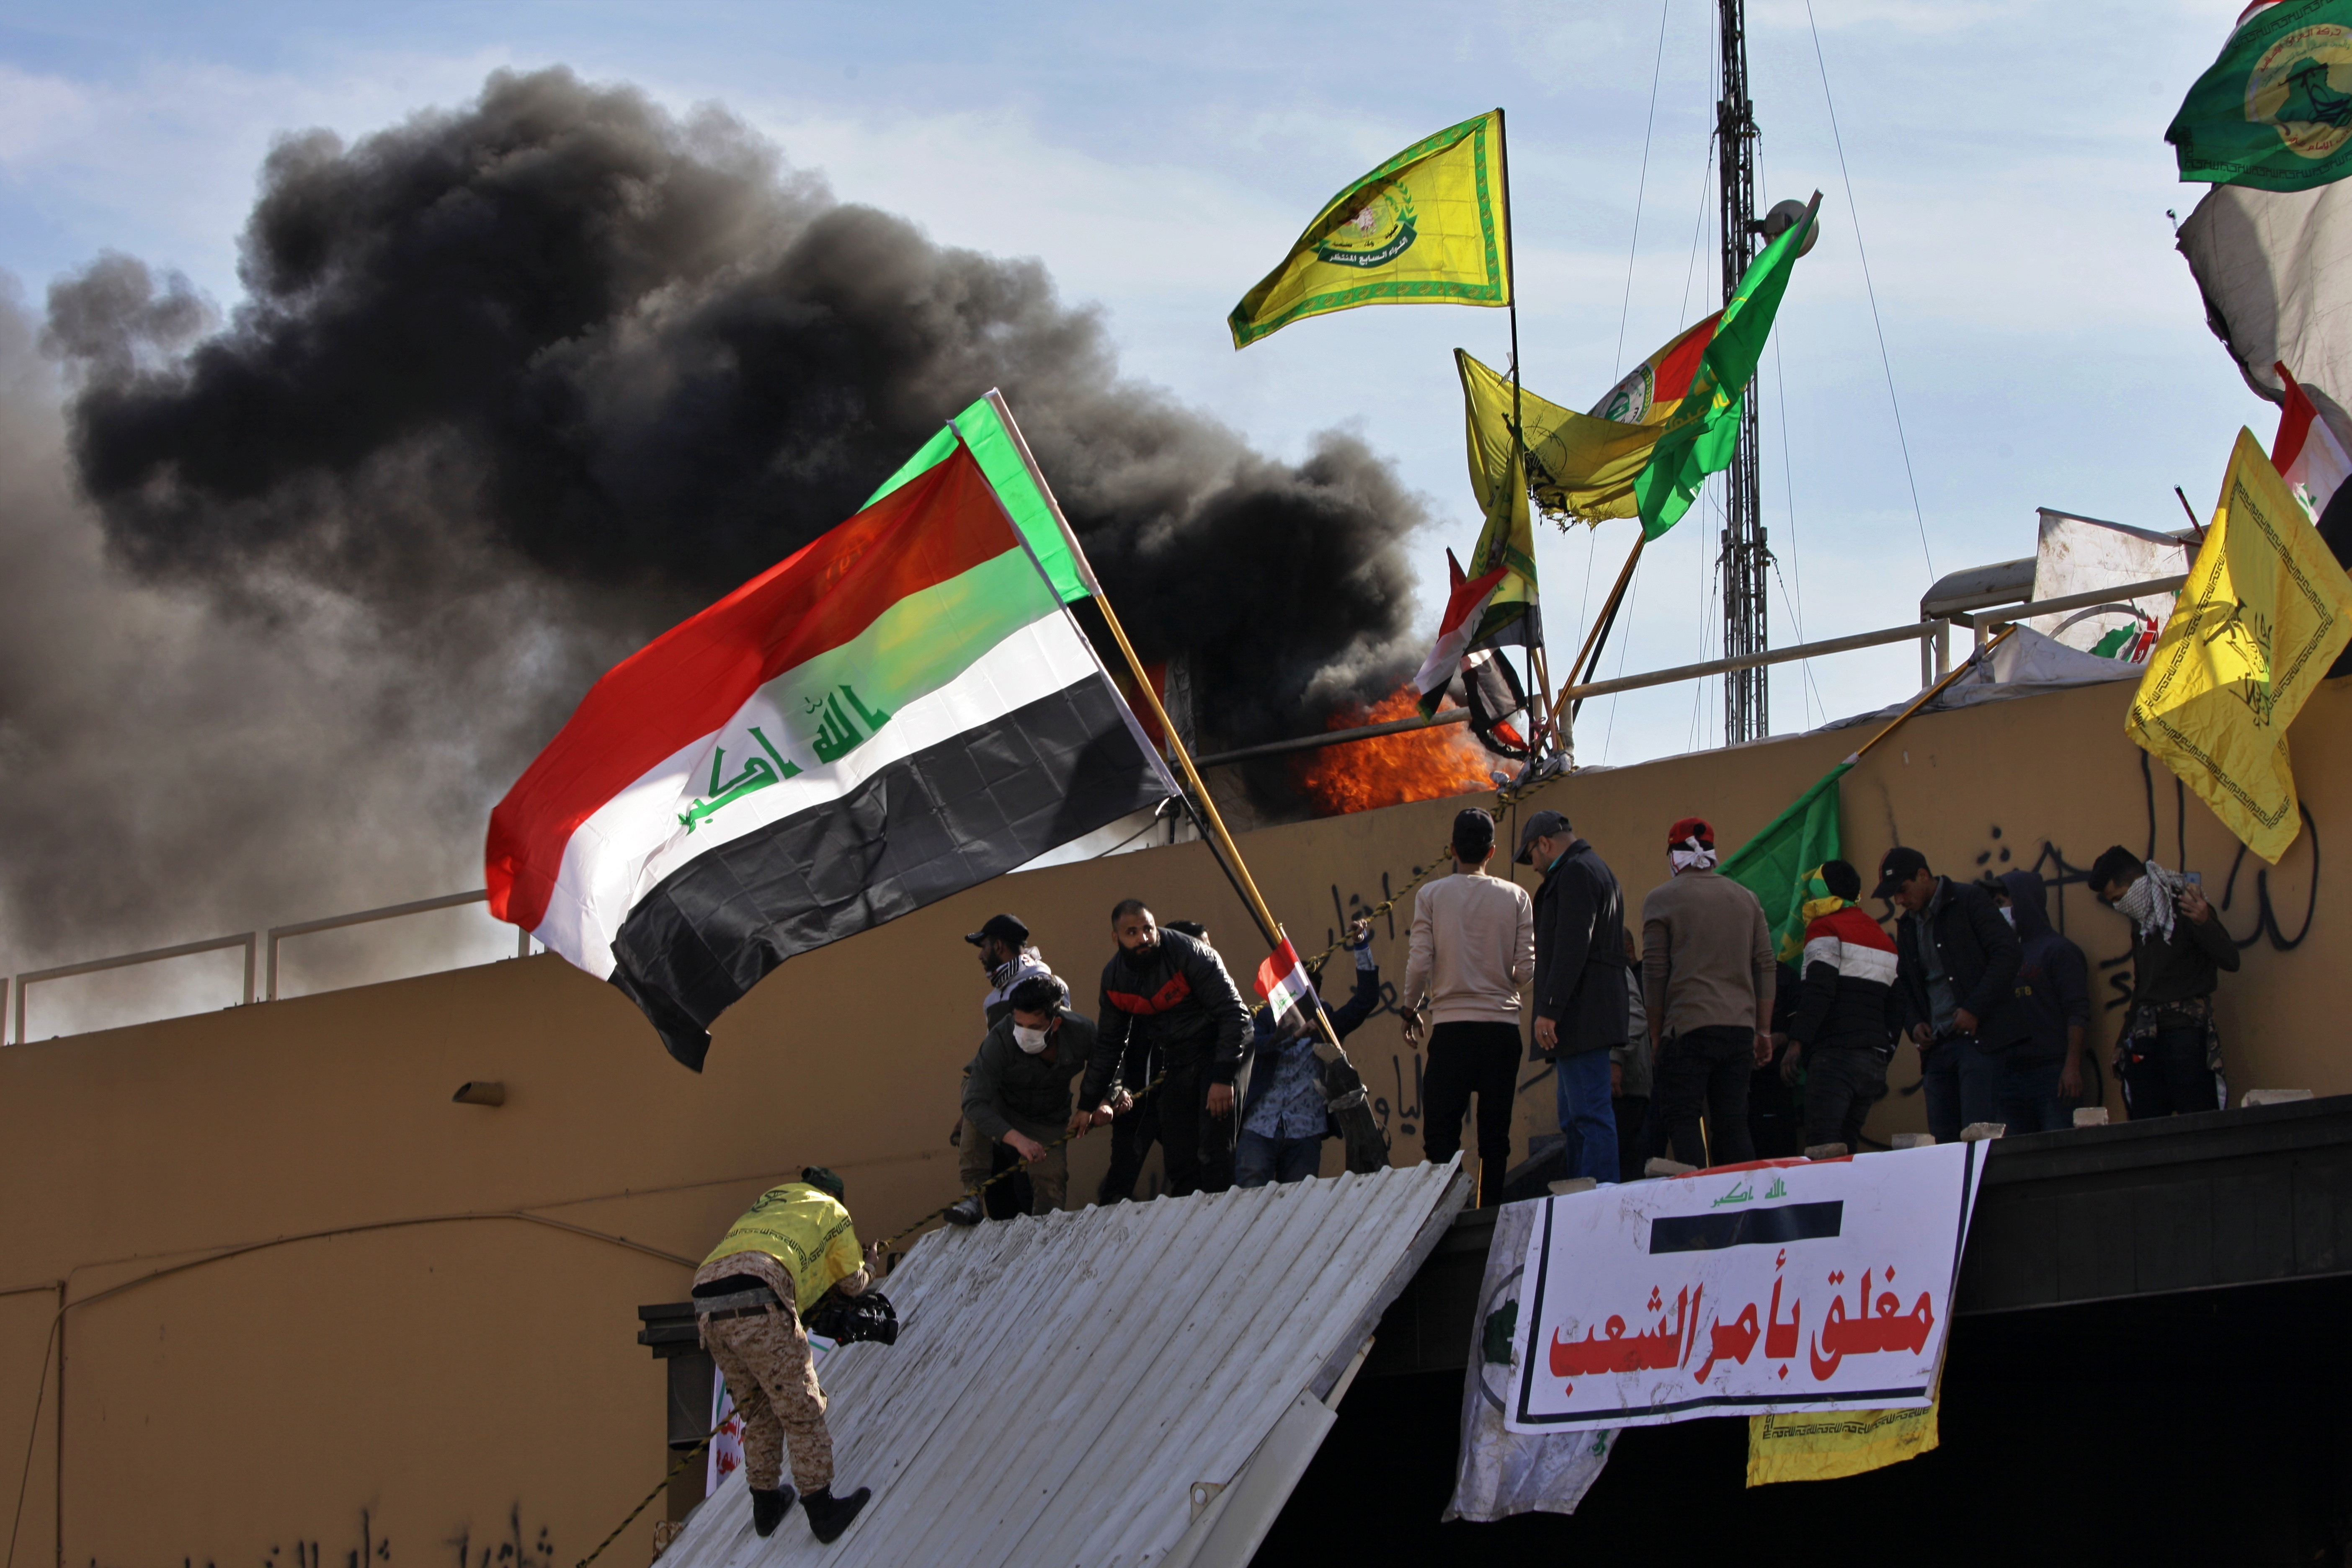 Why Did the U.S. Become the Focus of Iraqis Anger?